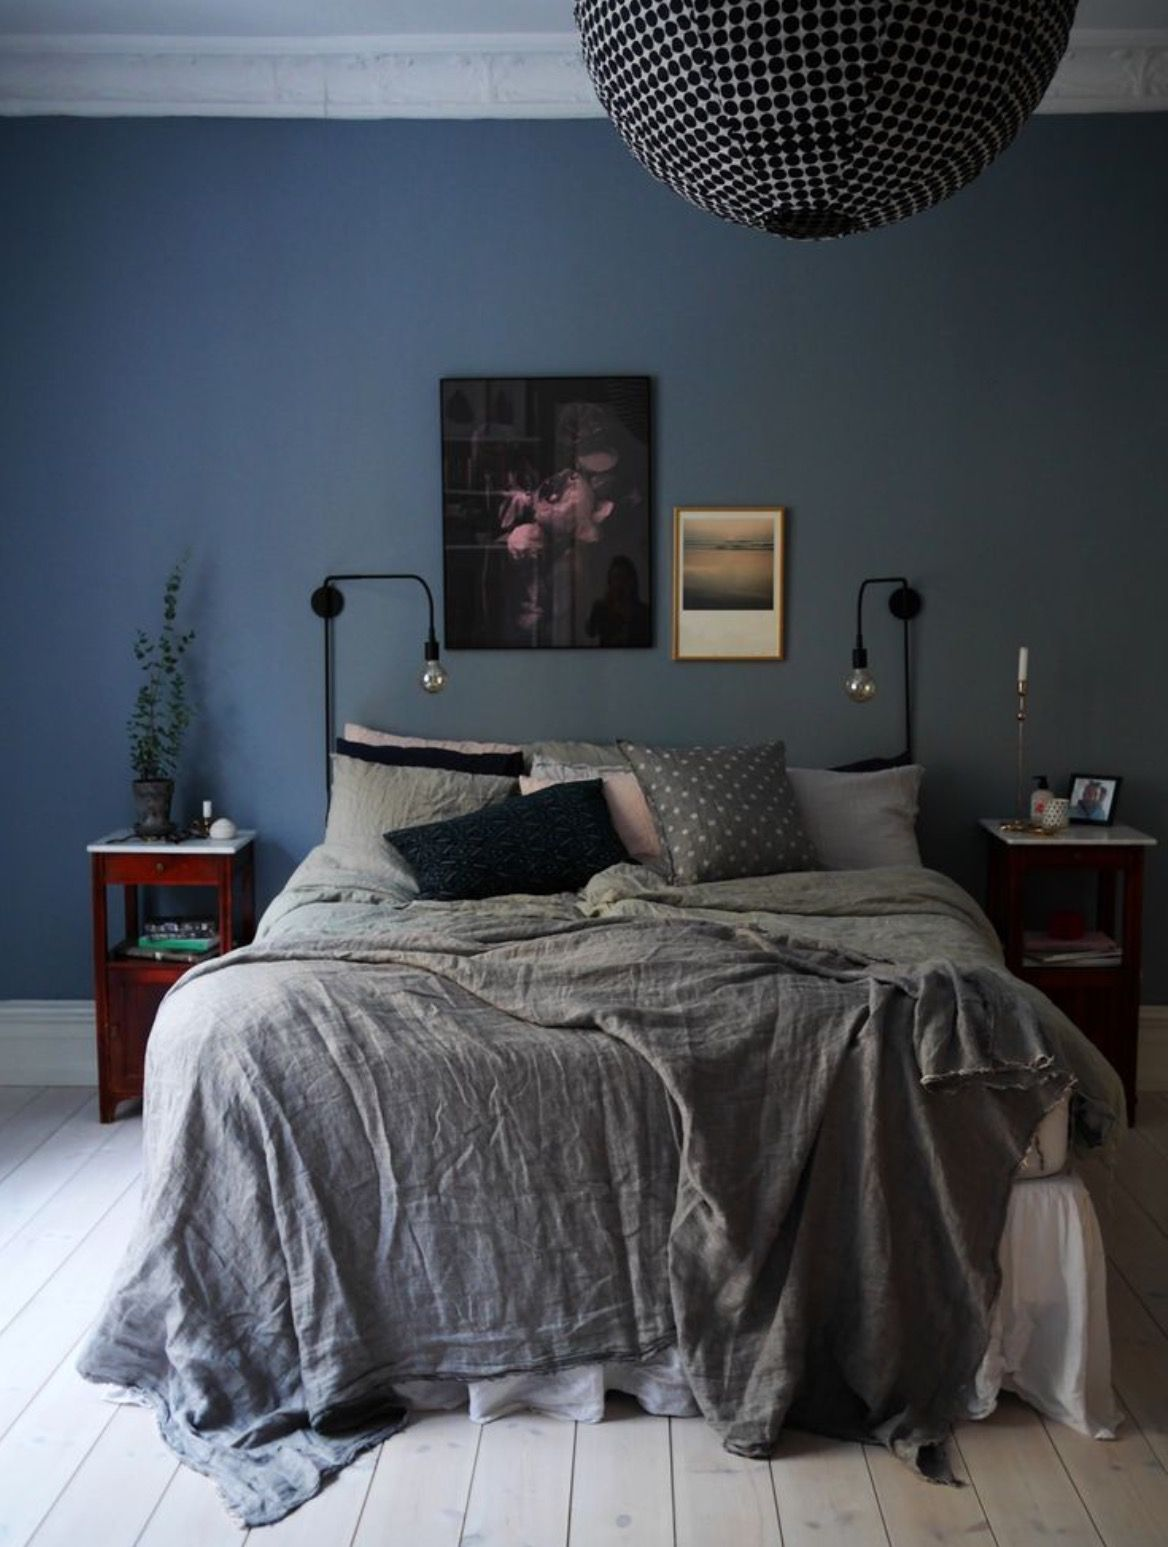 Dark And Moody Bedroom With Navy Blue Painted Walls Gray Bedding A Mix Of Black Throw Pillows Matching Cherry Wood Pedestal Nightstands